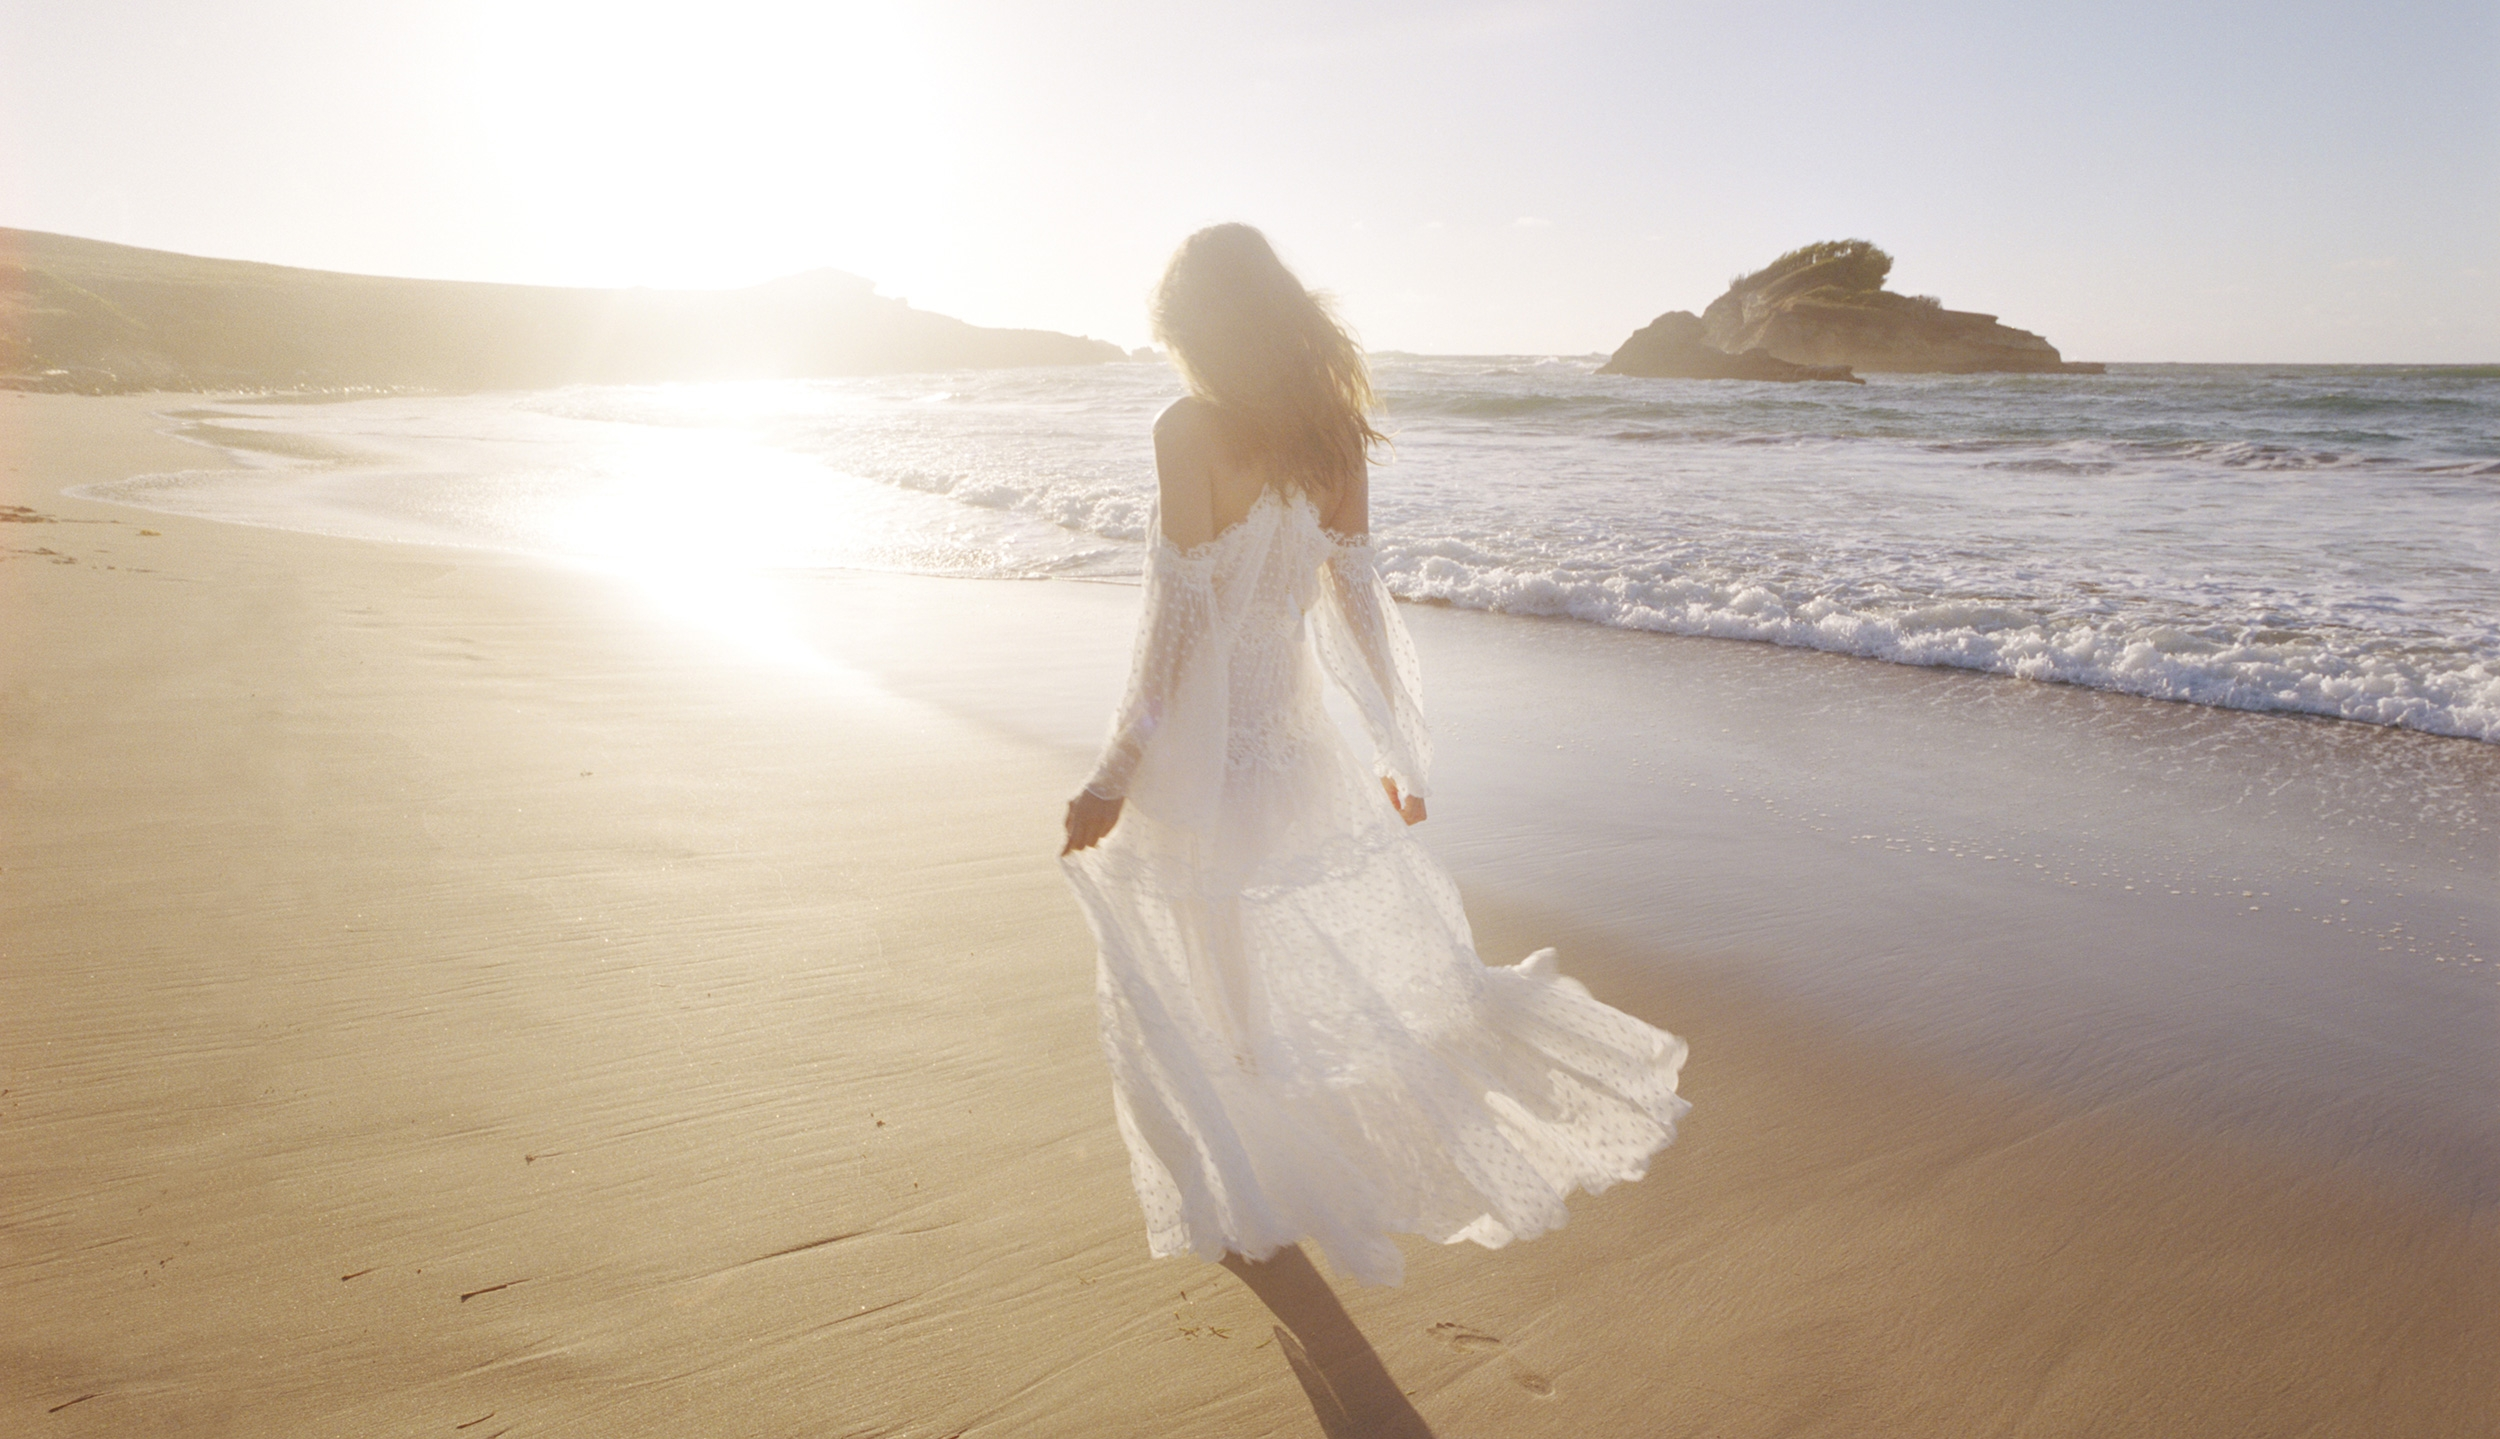 Walking along the beach in Look 1 of the Capsule Collection